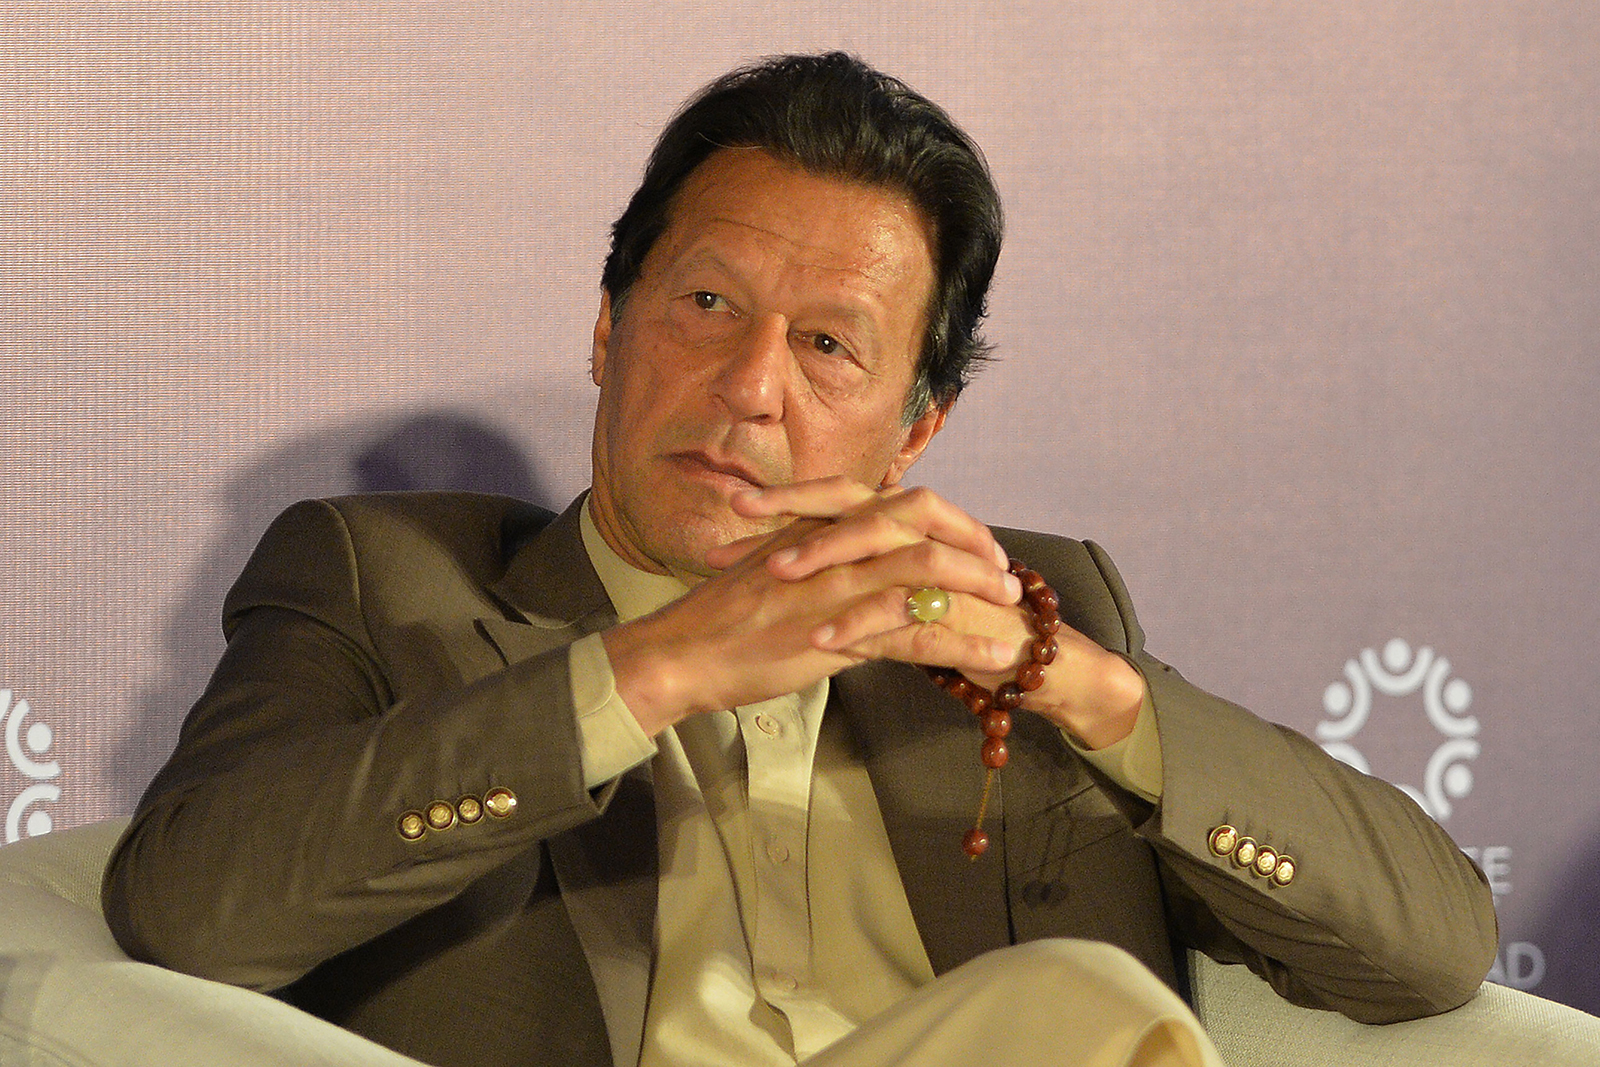 Pakistan's Prime Minister Imran Khan pictured on February 17.